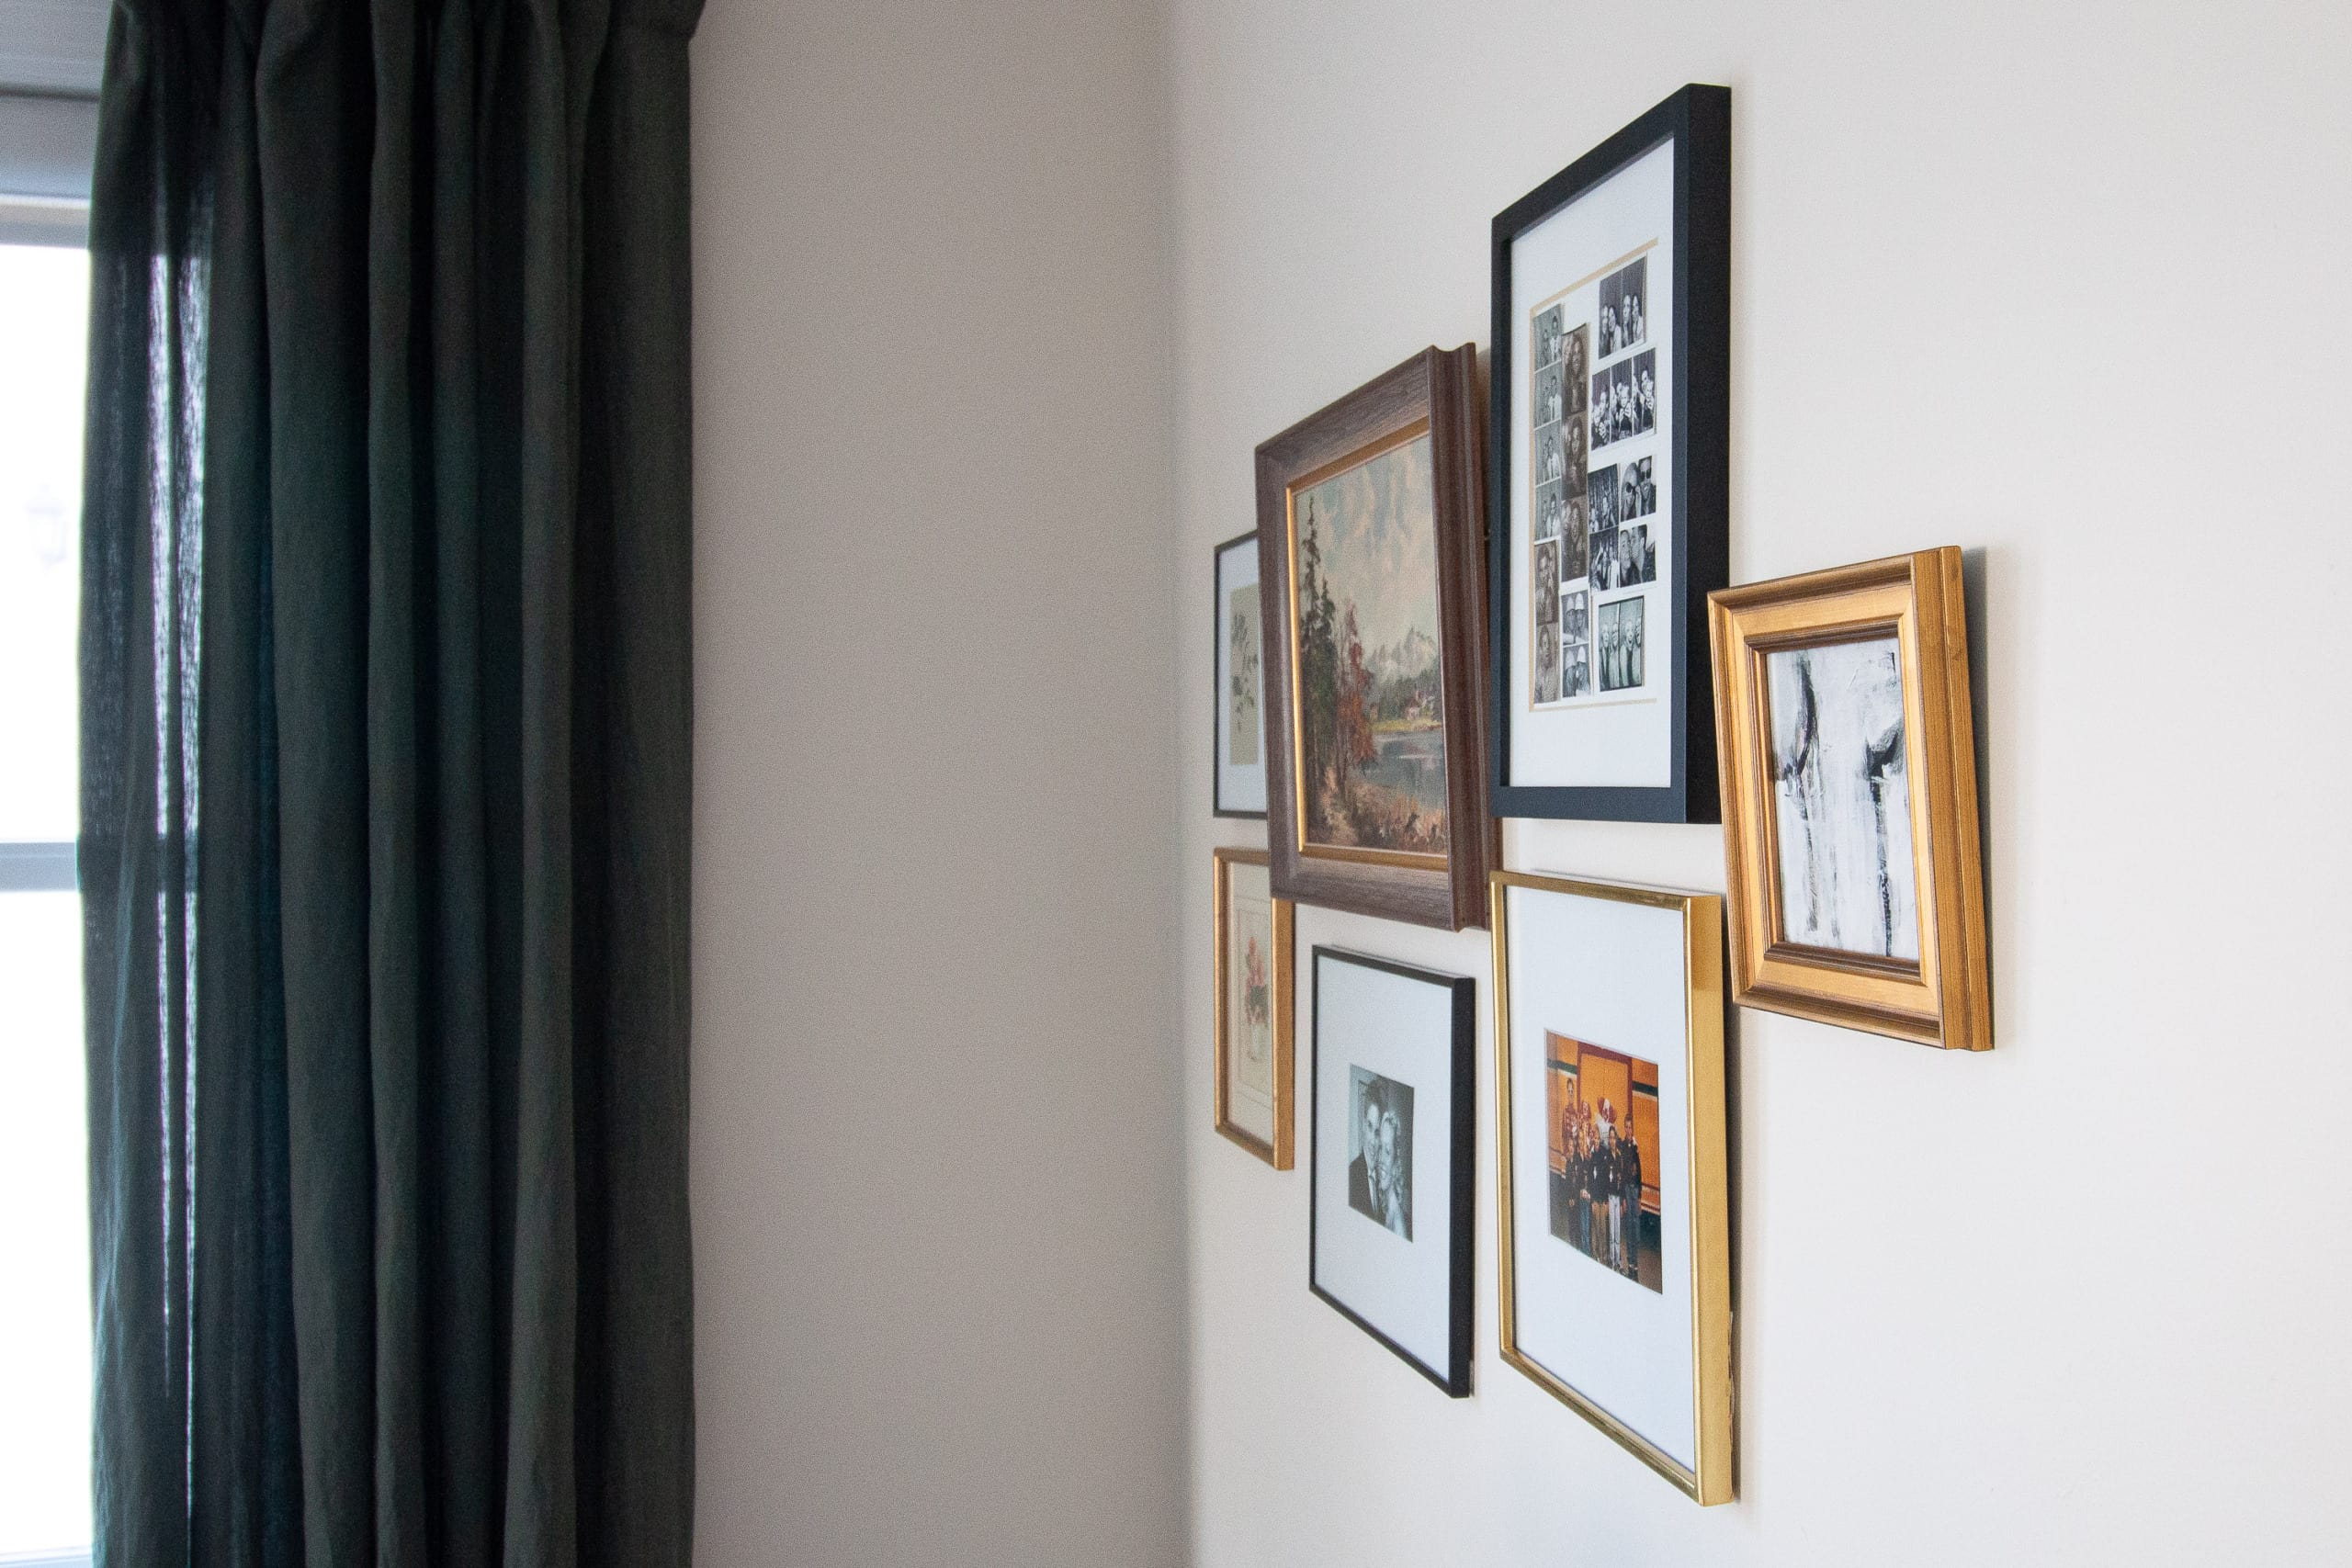 Our new living room gallery wall